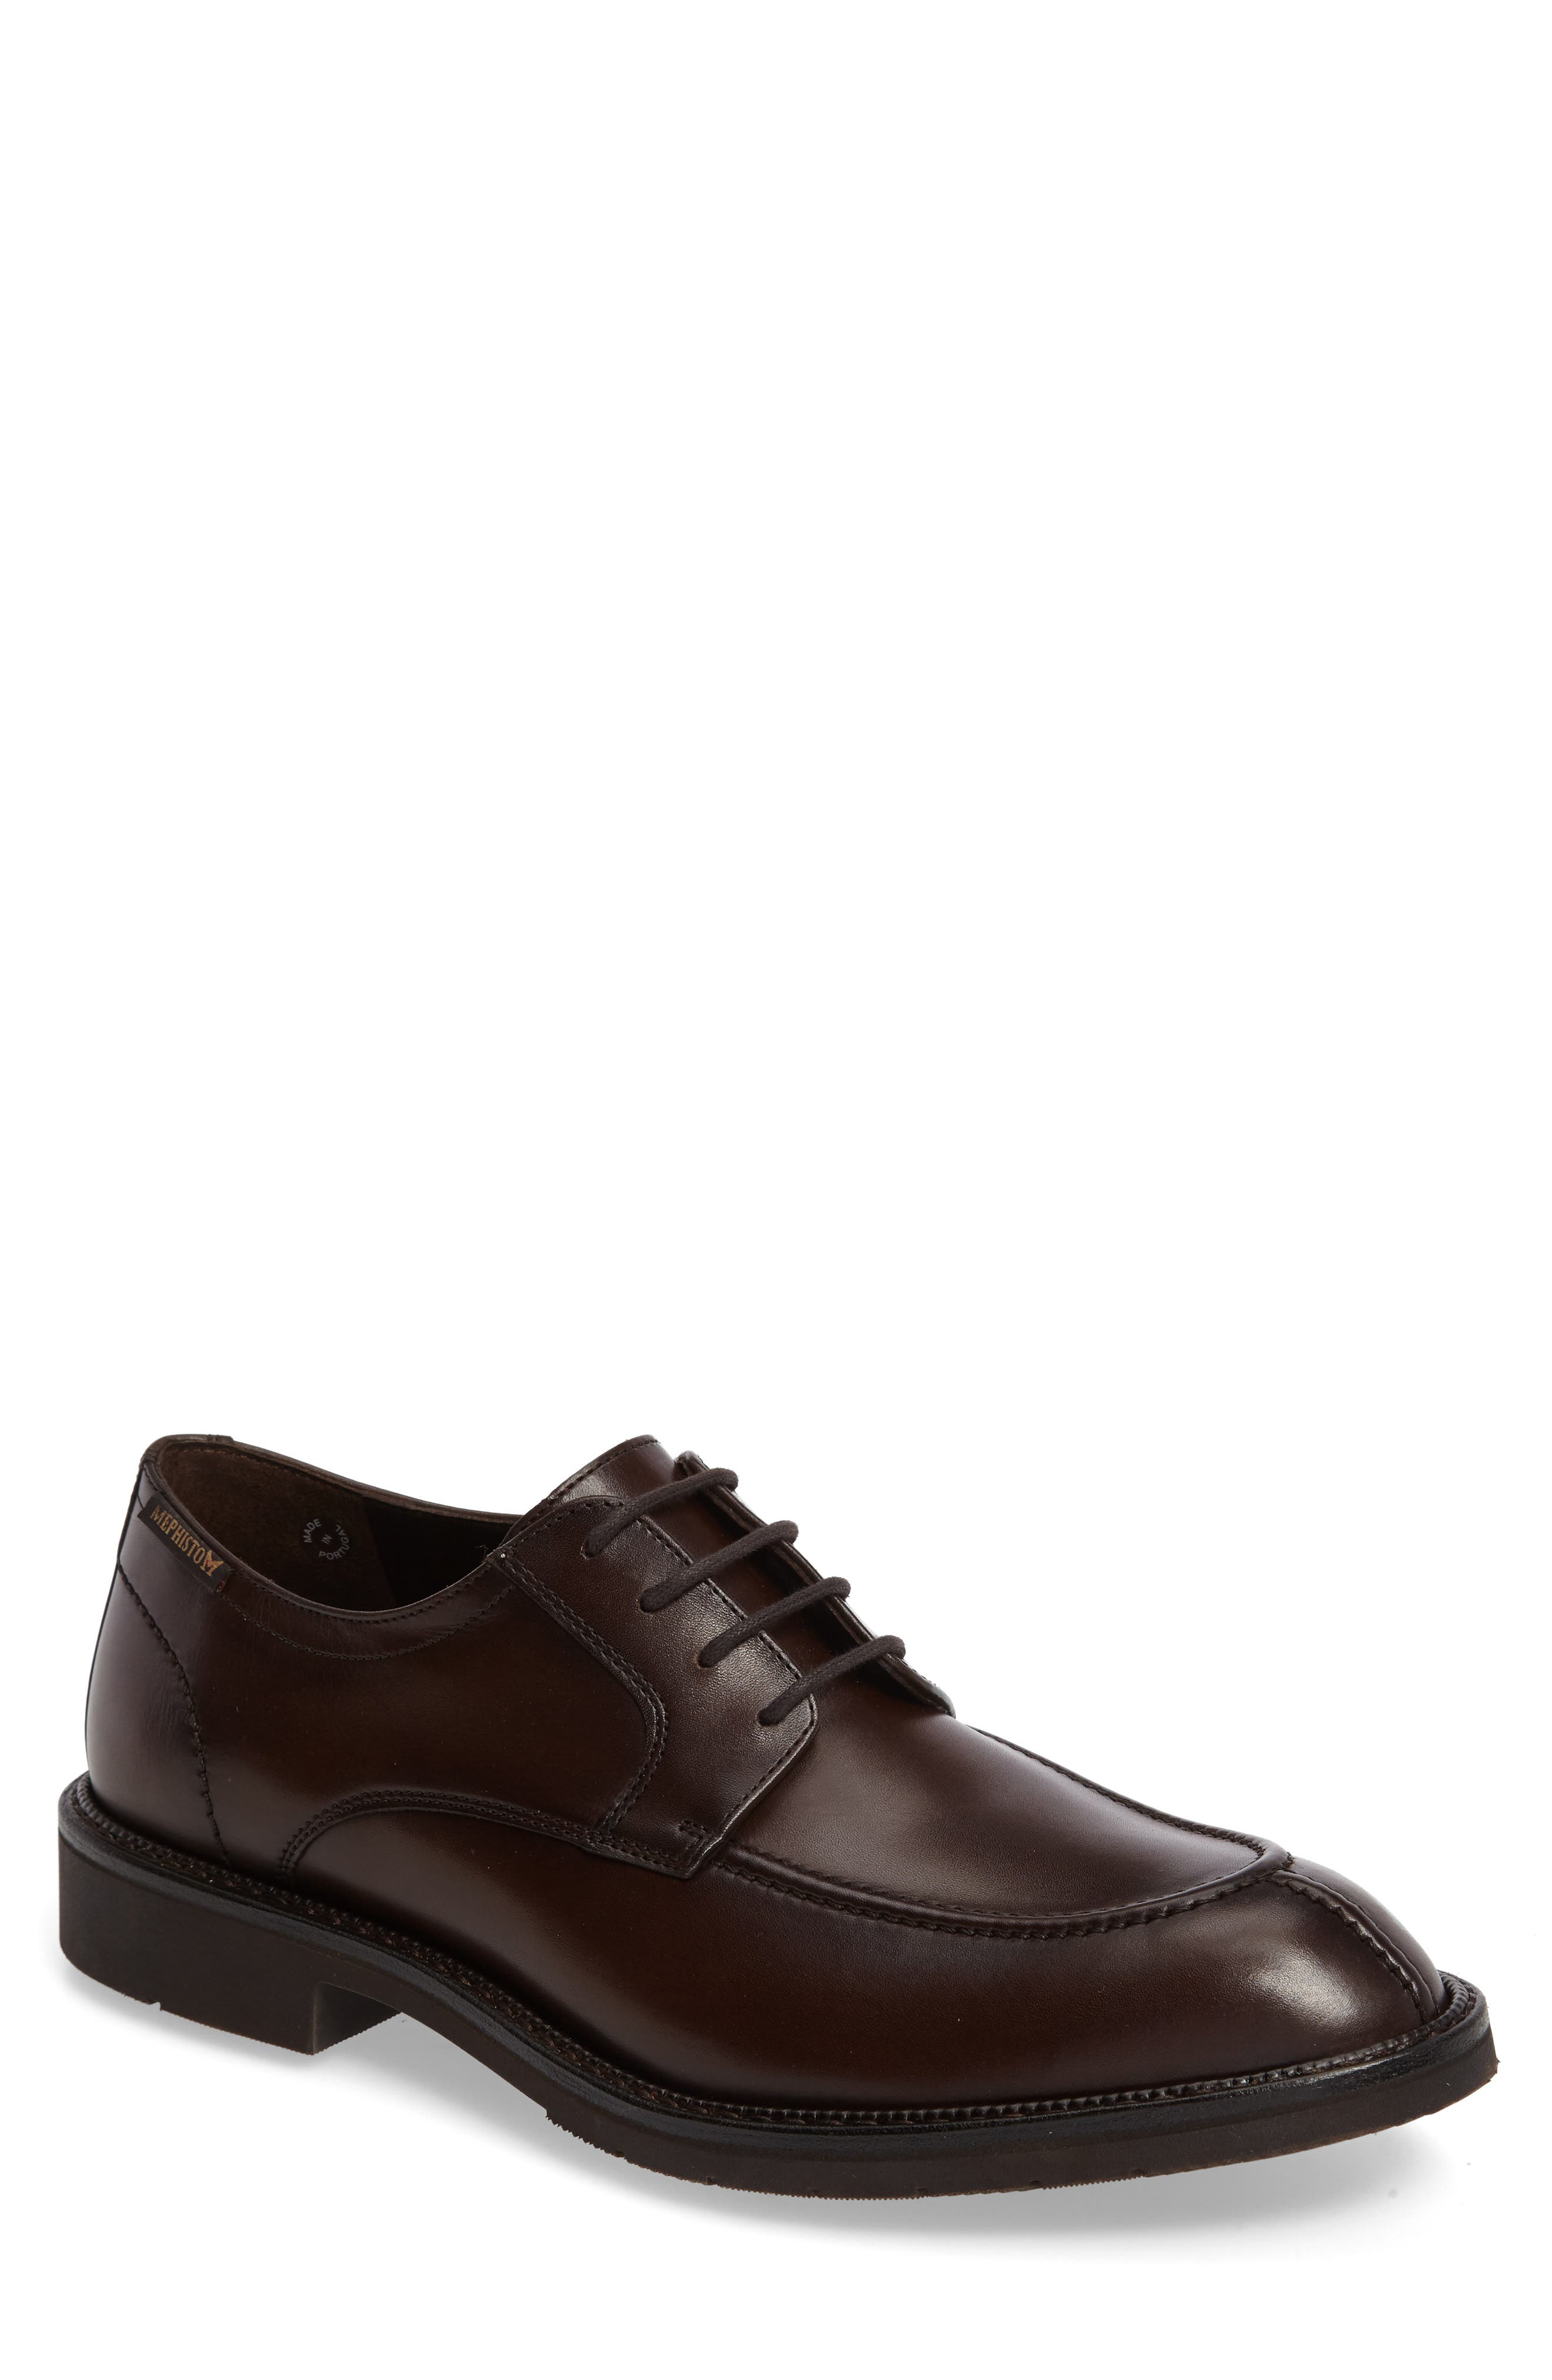 Mephisto Titus Apron-Toe Derby (Men)